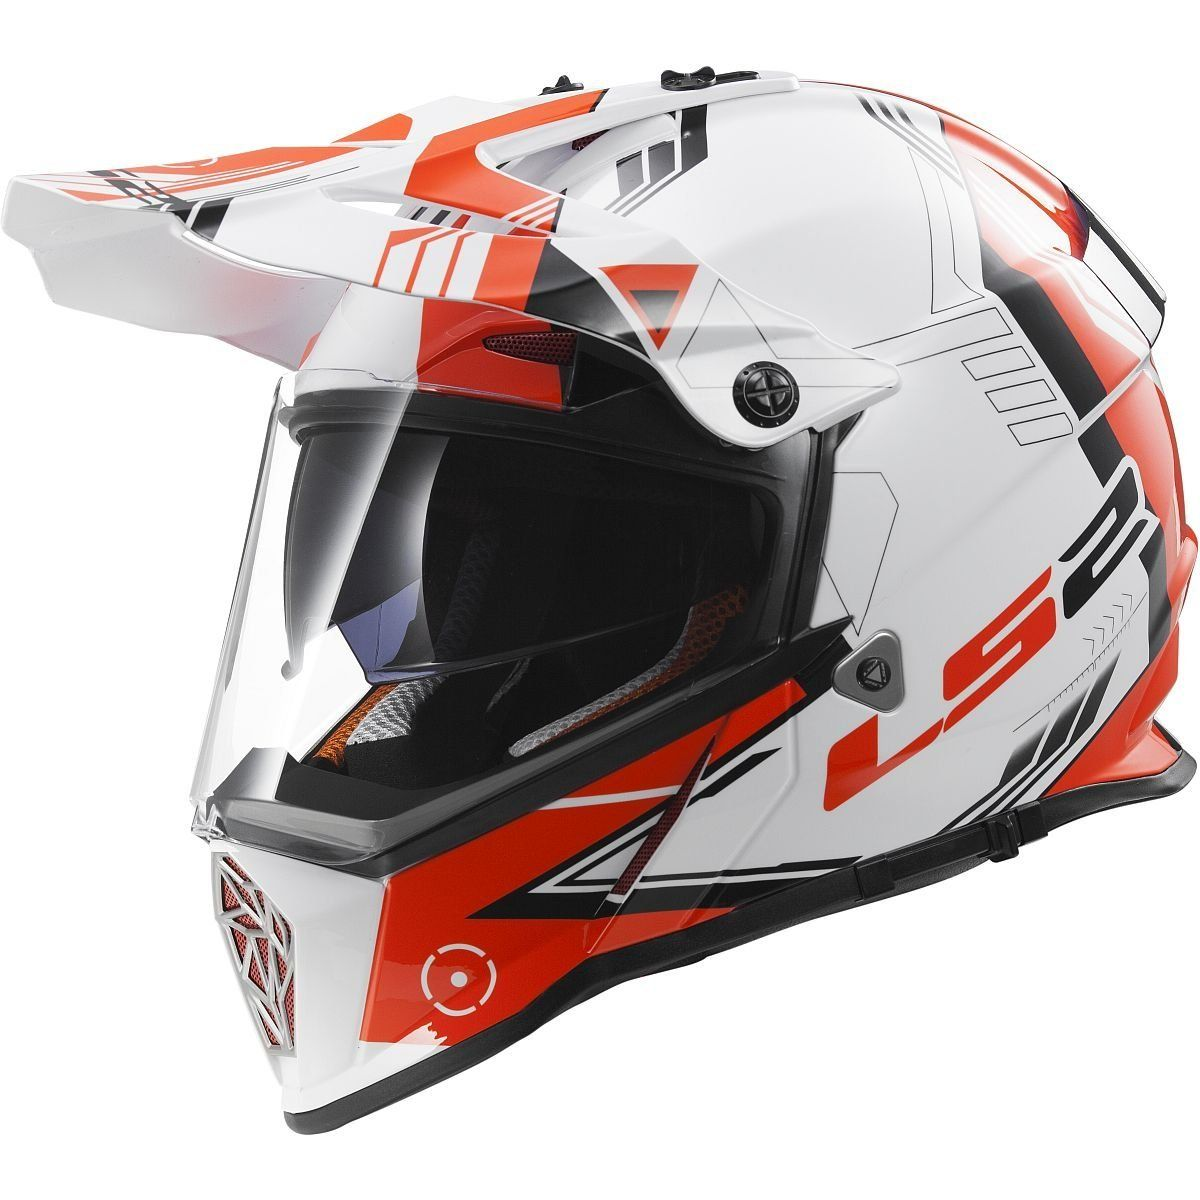 Best Adventure Motorcycle Helmet For 2020 Top 5 Models Compared